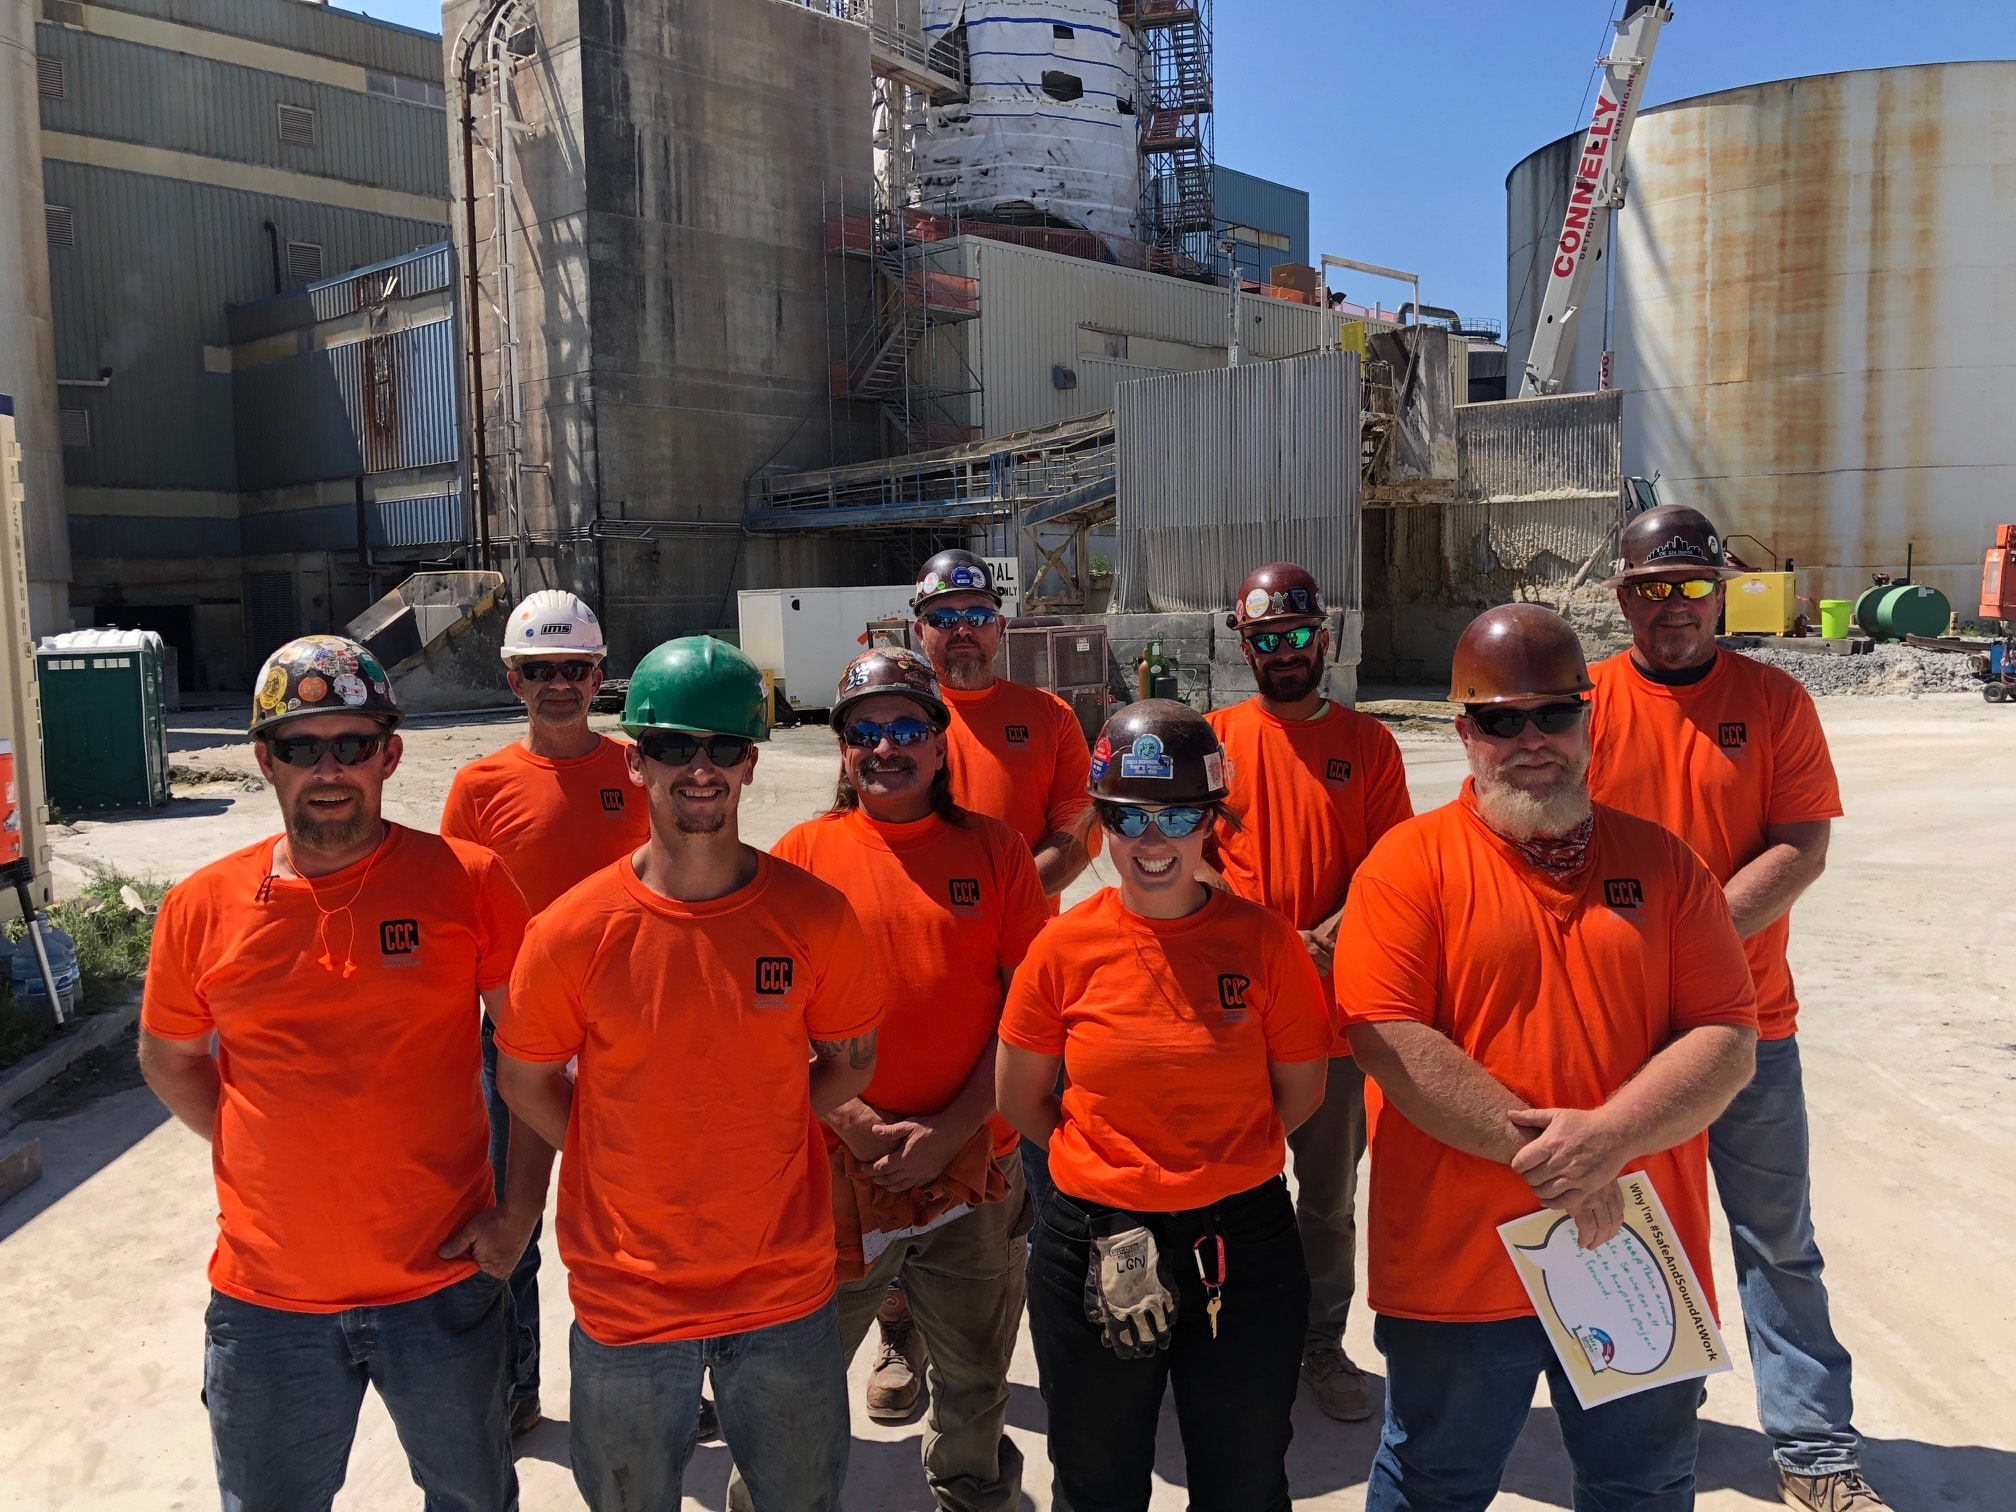 construction worker group photo in orange shirts